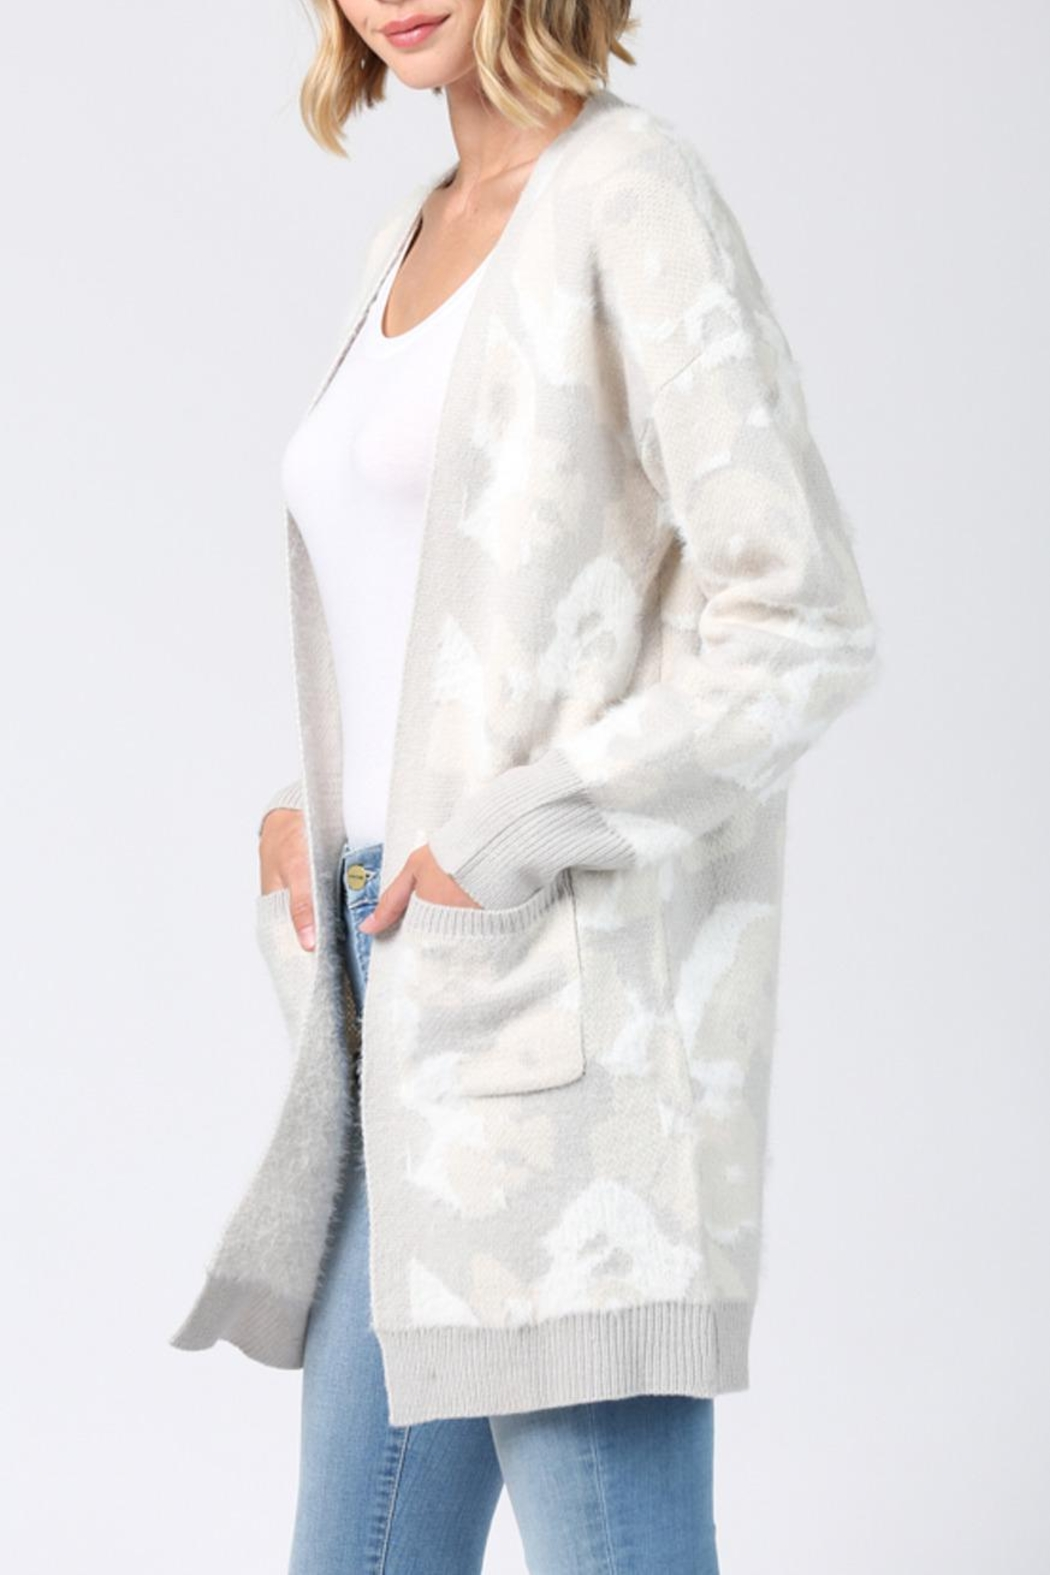 FATE by LFD Fuzzy Camo Cardigan - Front Full Image